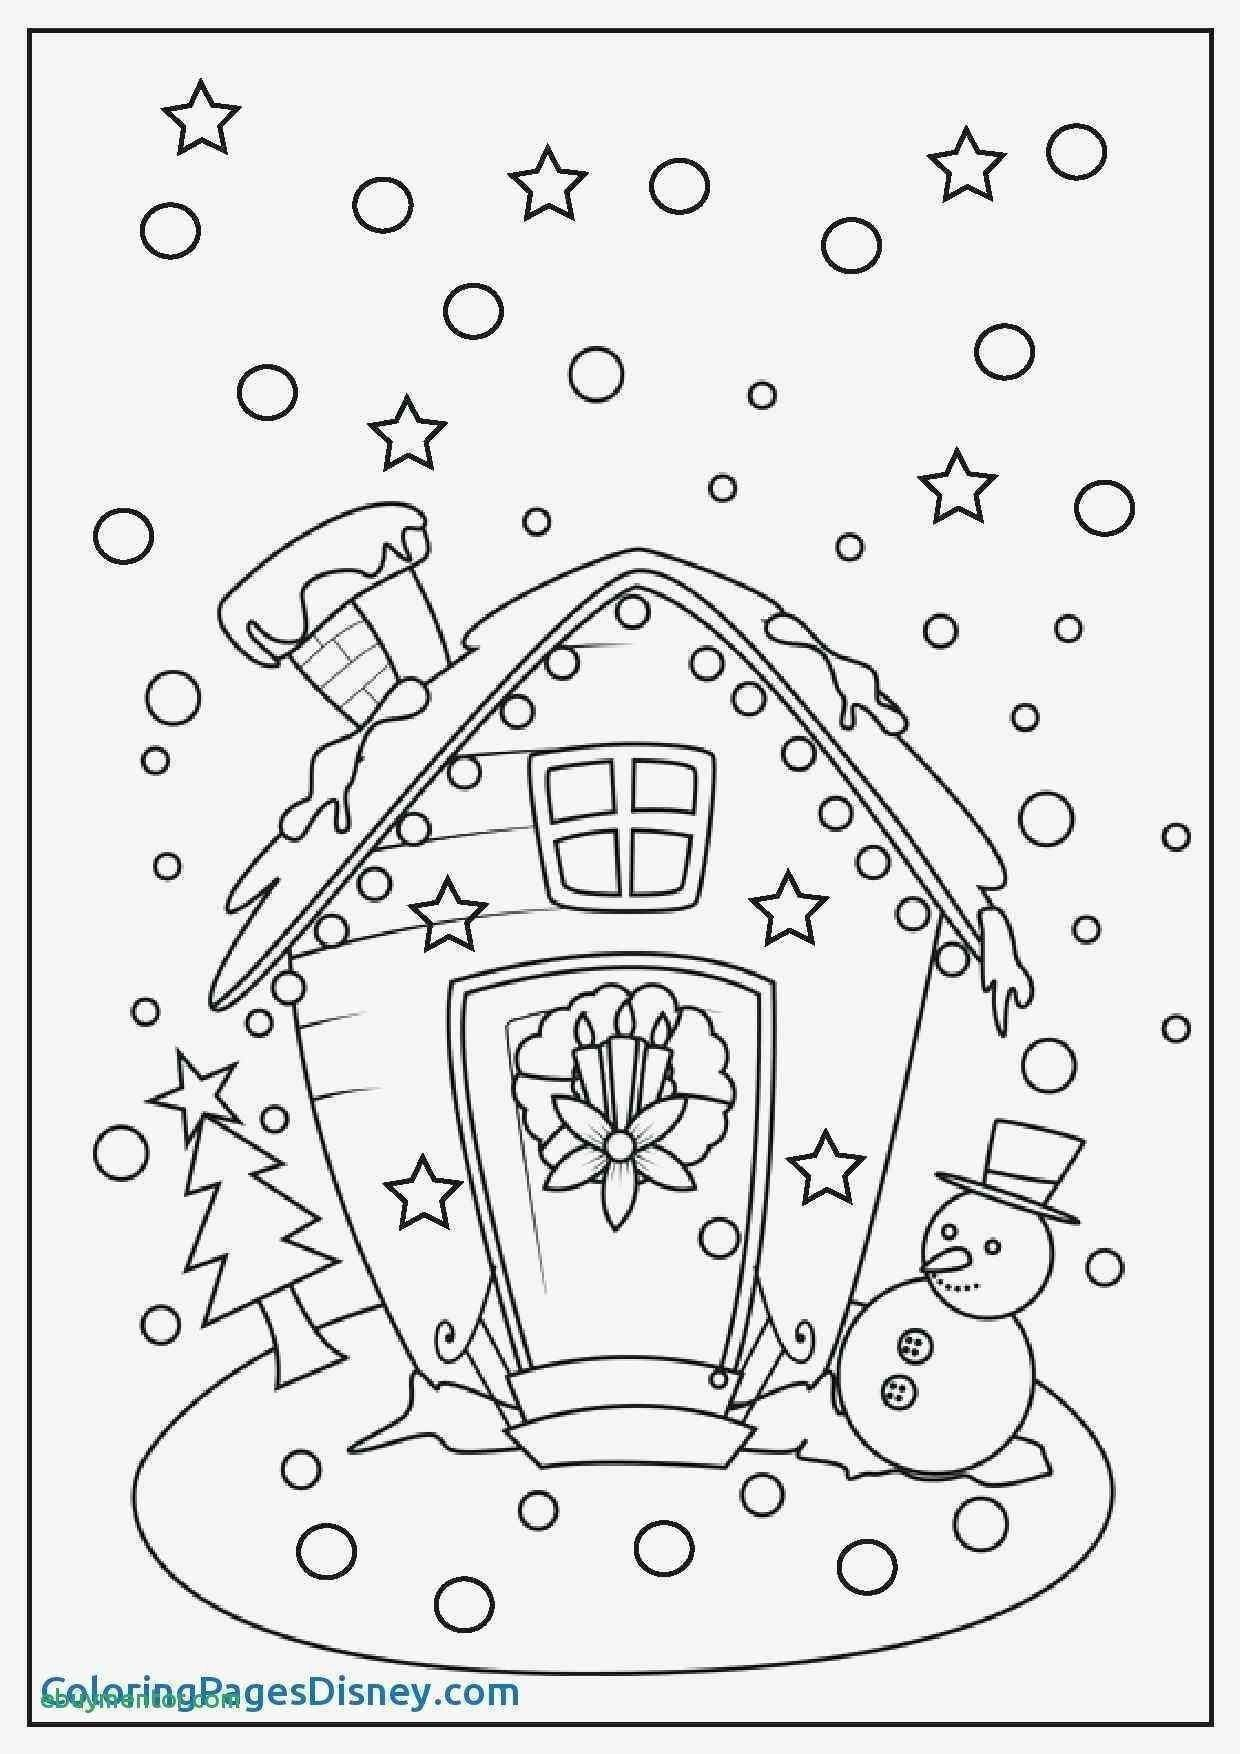 Christmas Tree Coloring Page Beautiful Awesome Christmas Lights Colo In 2020 Printable Christmas Coloring Pages Free Christmas Coloring Pages Christmas Coloring Sheets